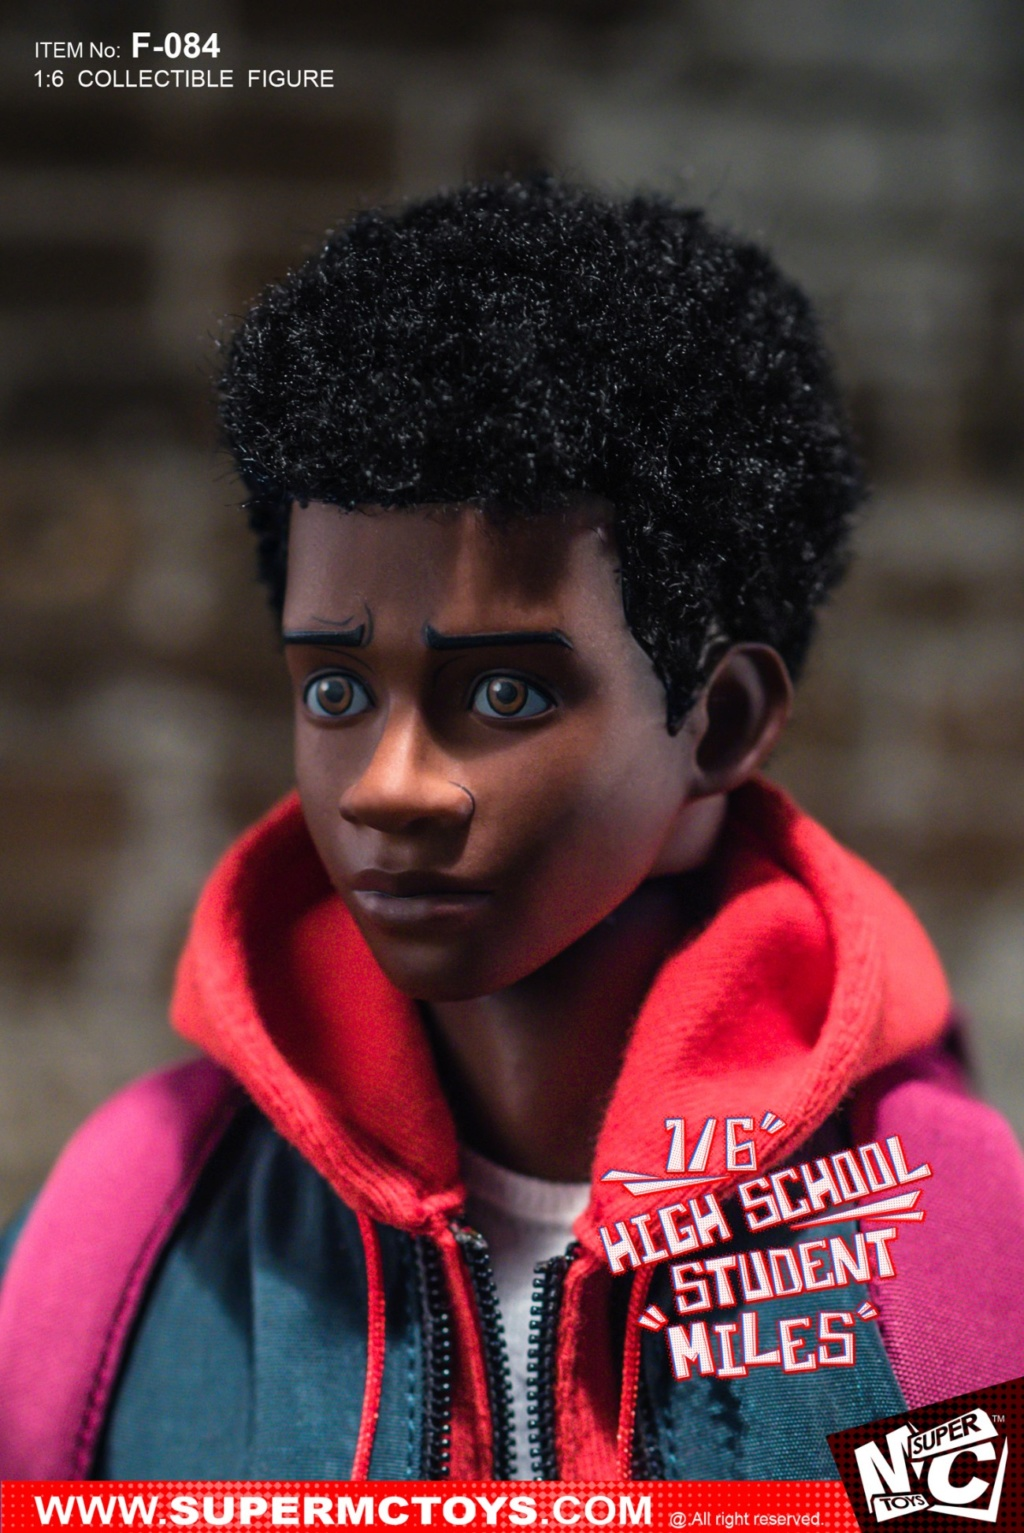 animatedmovie-based - NEW PRODUCT: SUPERMCTOYS: 1/6 High School Students - Little Black Miles Miles Movable F-084# 19373510